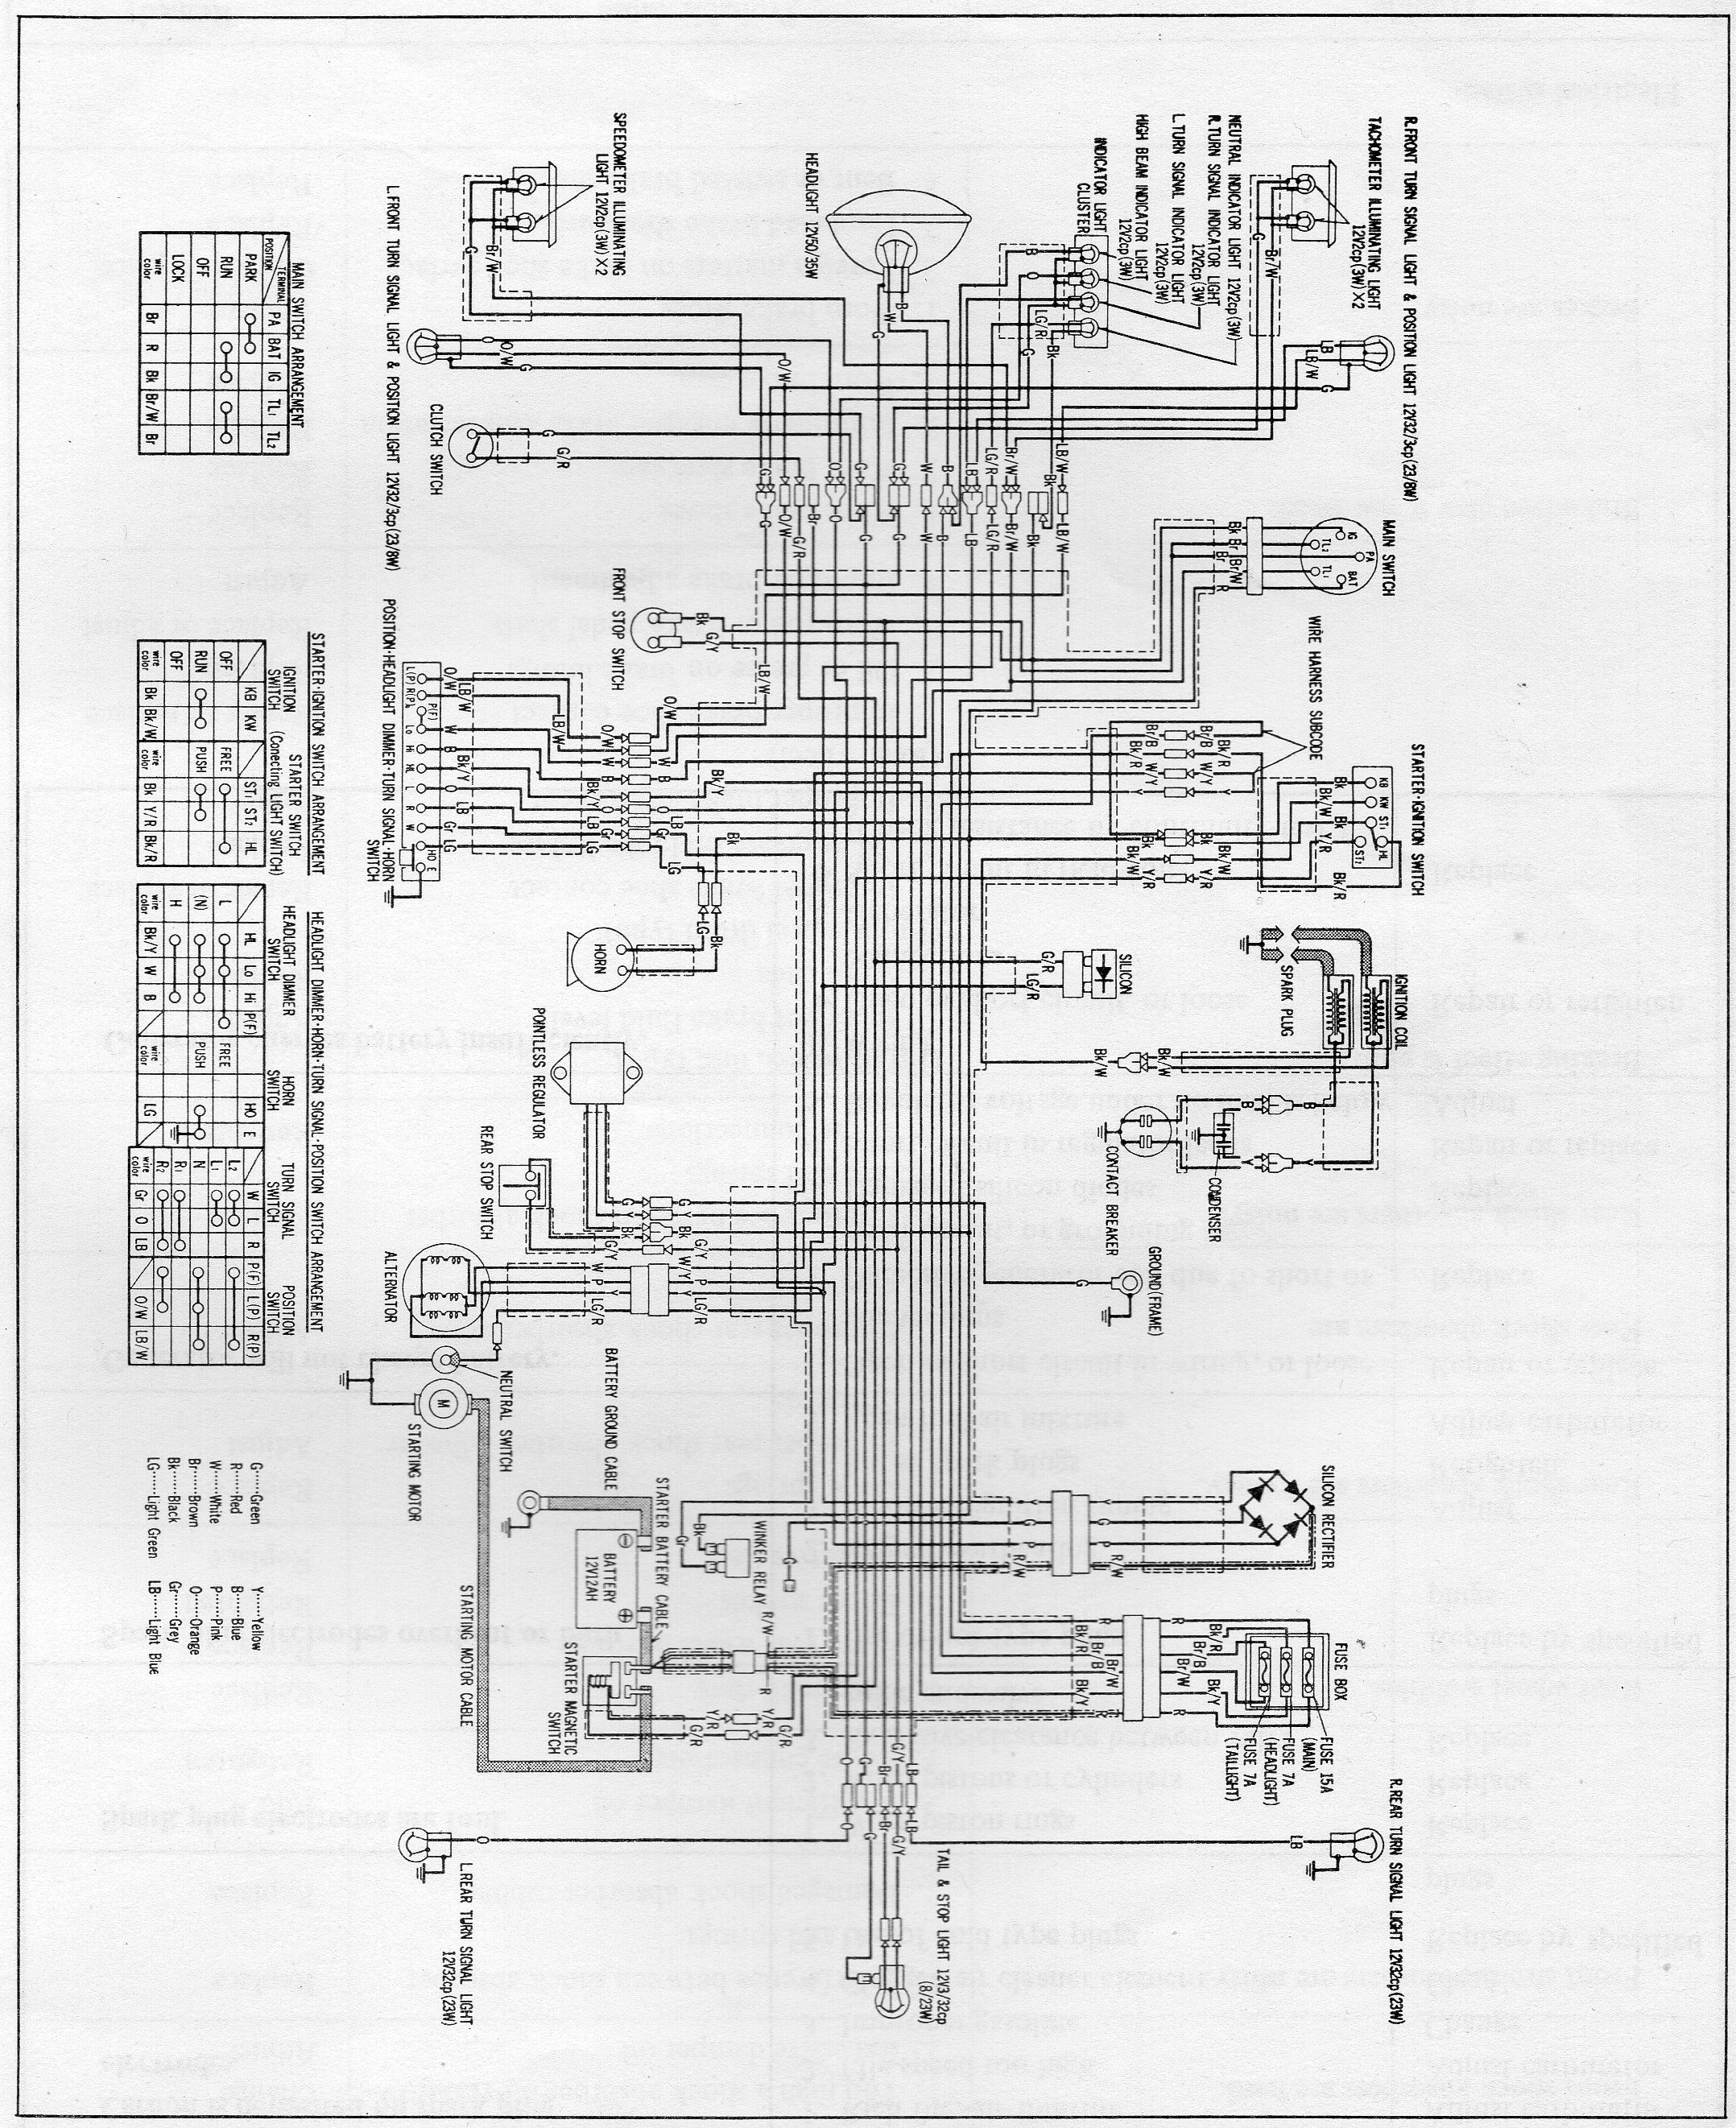 Wiring And Diagram Database